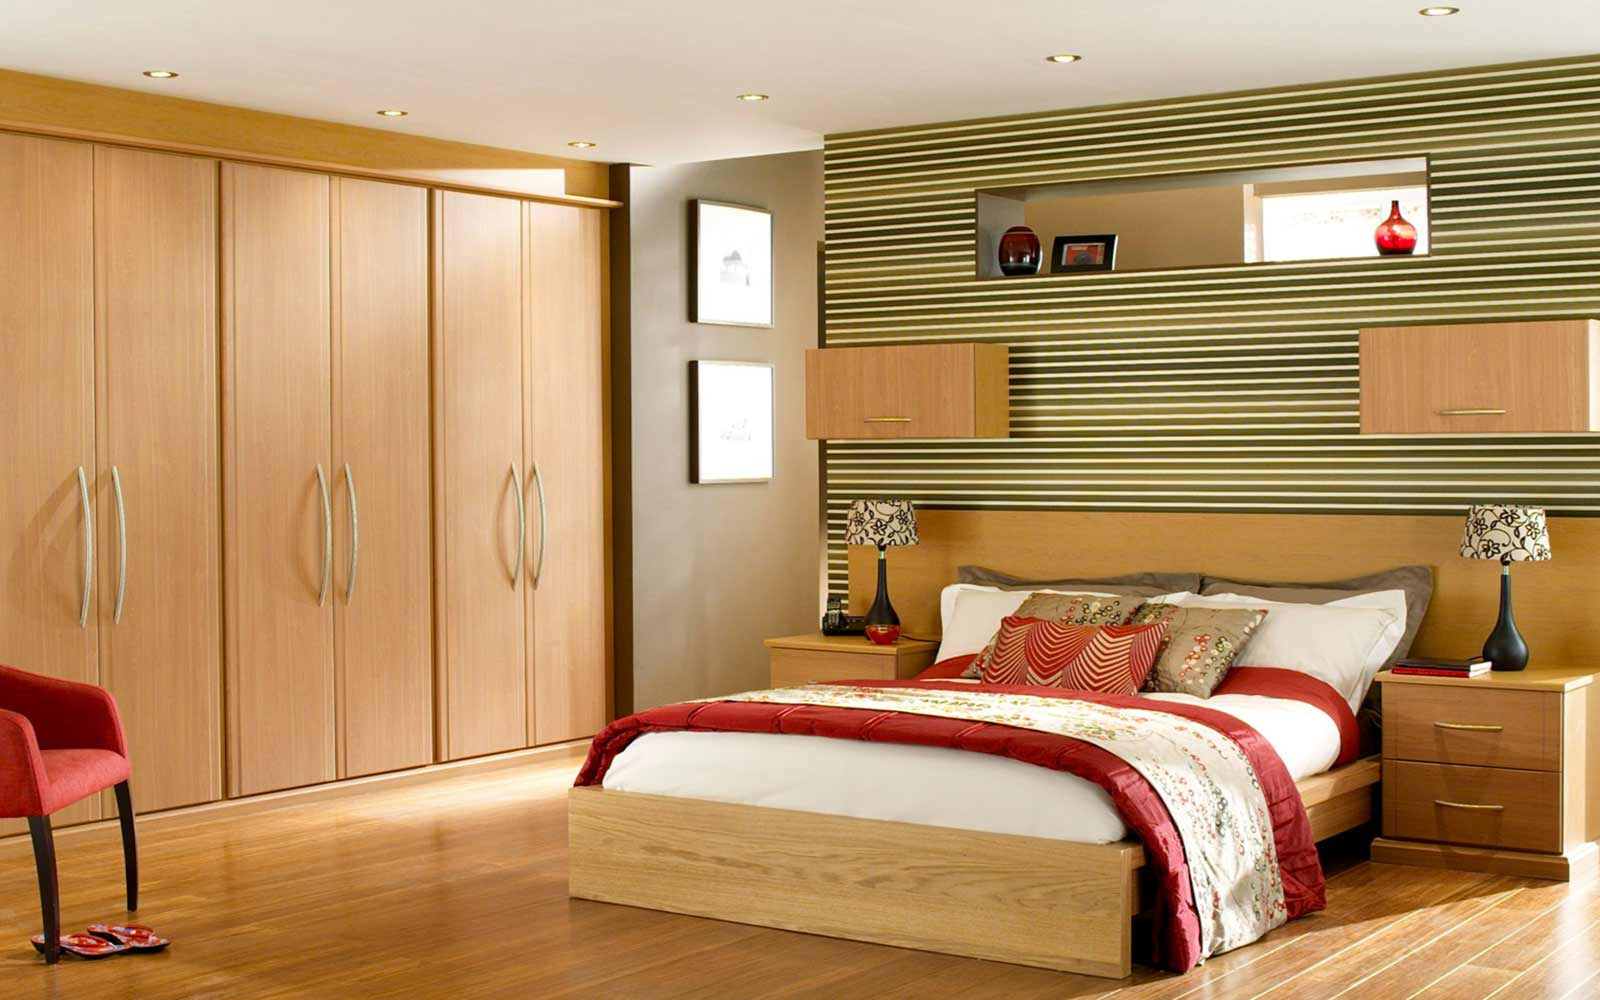 Bedroom furniture wardrobes - Concept Of Walkin Wardrobes